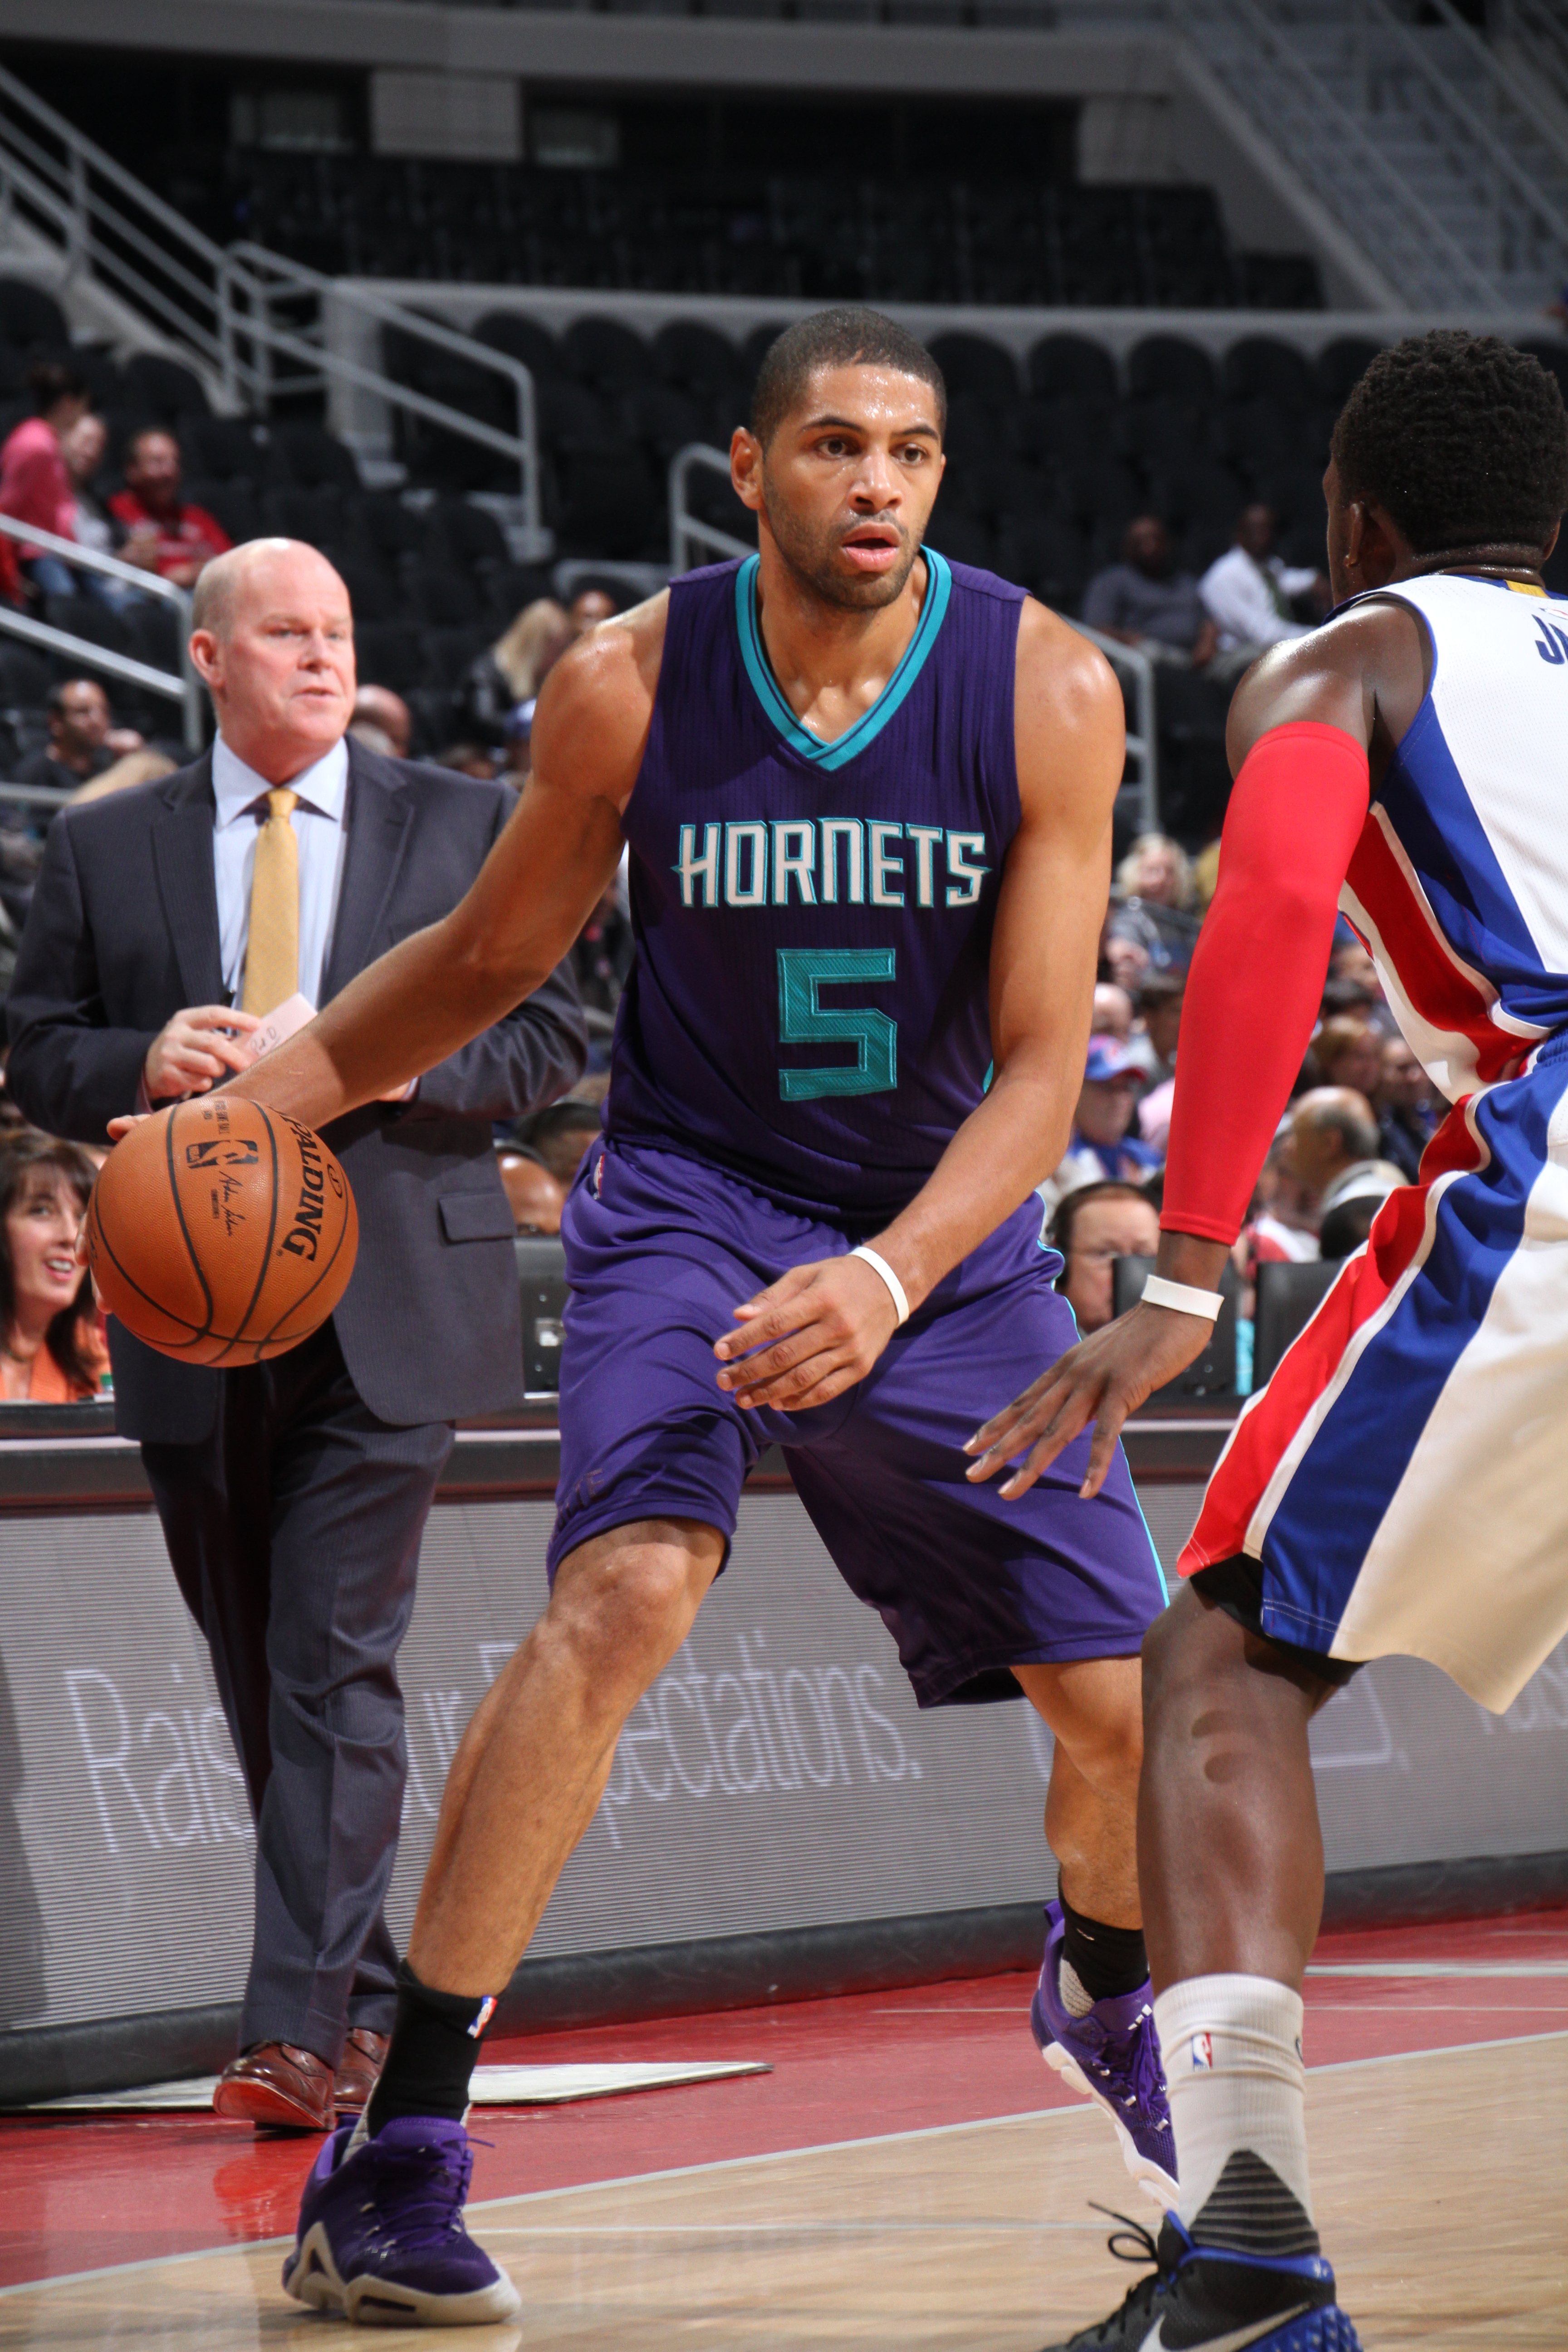 AUBURN HILLS, MI - OCTOBER 21:  Nicolas Batum #5 of the Charlotte Hornets handles the ball against the Detroit Pistons on October 21, 2015 at The Palace of Auburn Hills in Auburn Hills, Michigan. (Photo by B. Sevald/Einstein/NBAE via Getty Images)